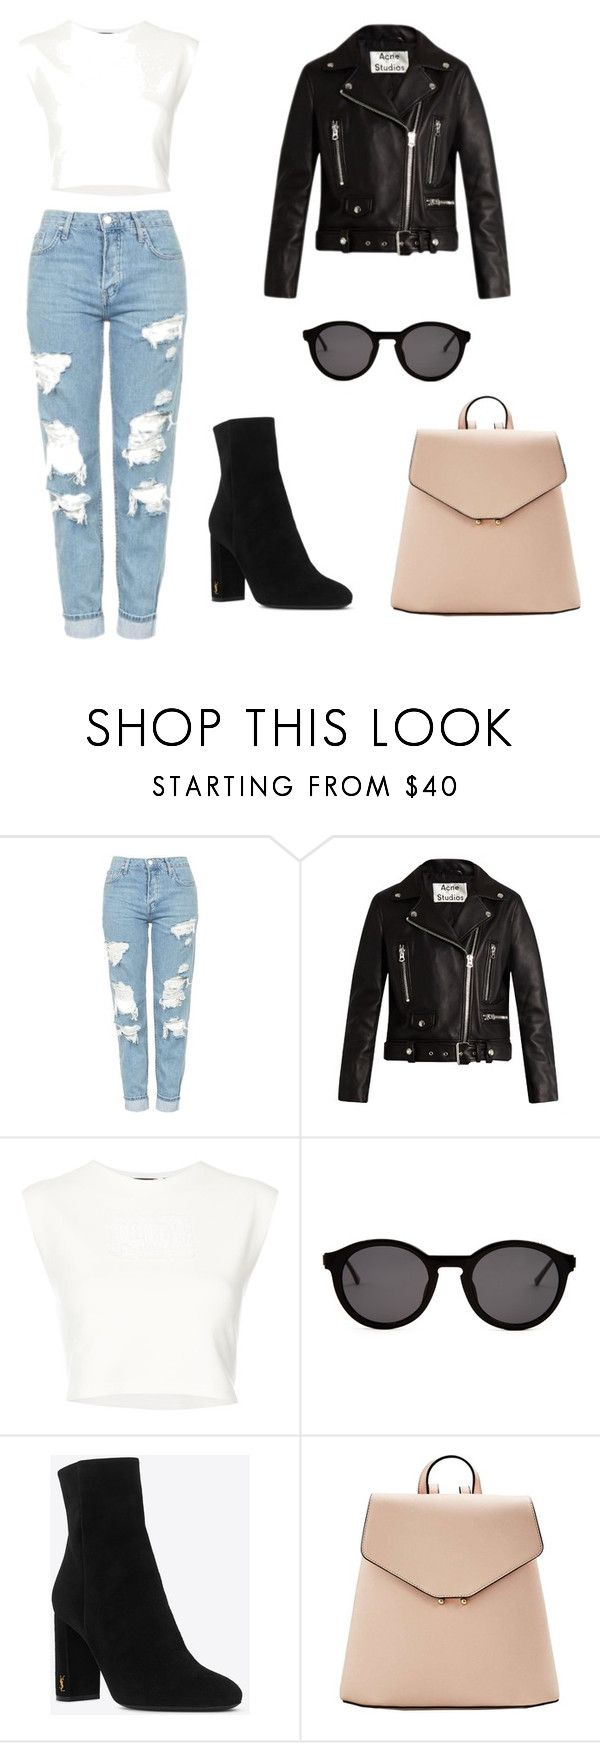 """60s"" by sofigaitan on Polyvore featuring moda, Topshop, Acne Studios, Puma, Thierry Lasry, Yves Saint Laurent y MANGO"